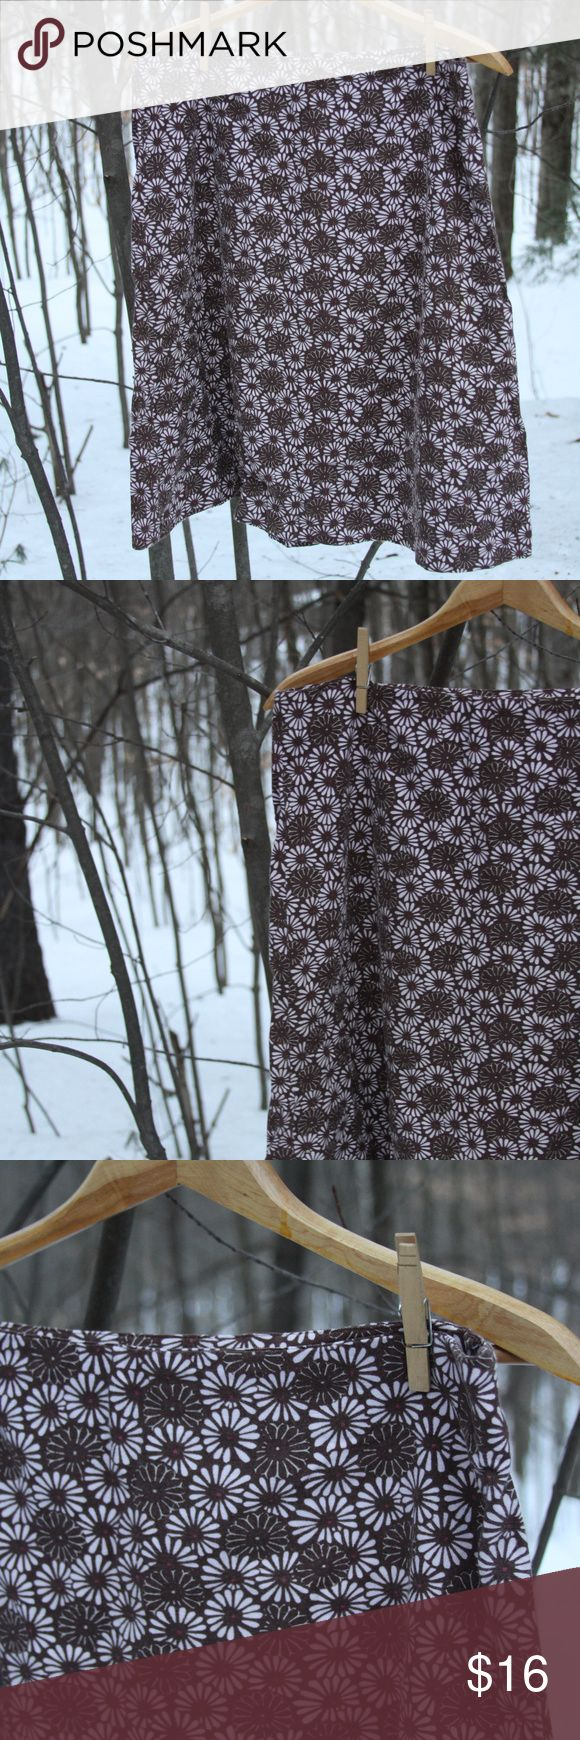 """Springy flowered linen/cotton skirt Springy flowered linen/cotton A-line skirt. Side zipper Brown & white flowers with a magenta center. 55% Linen, 45% Cotton.  Waist 34"""" Overall length from waist to hem 24 1/2""""  All orders come with a free handmade lavender sachet! Eddie Bauer Skirts Midi"""